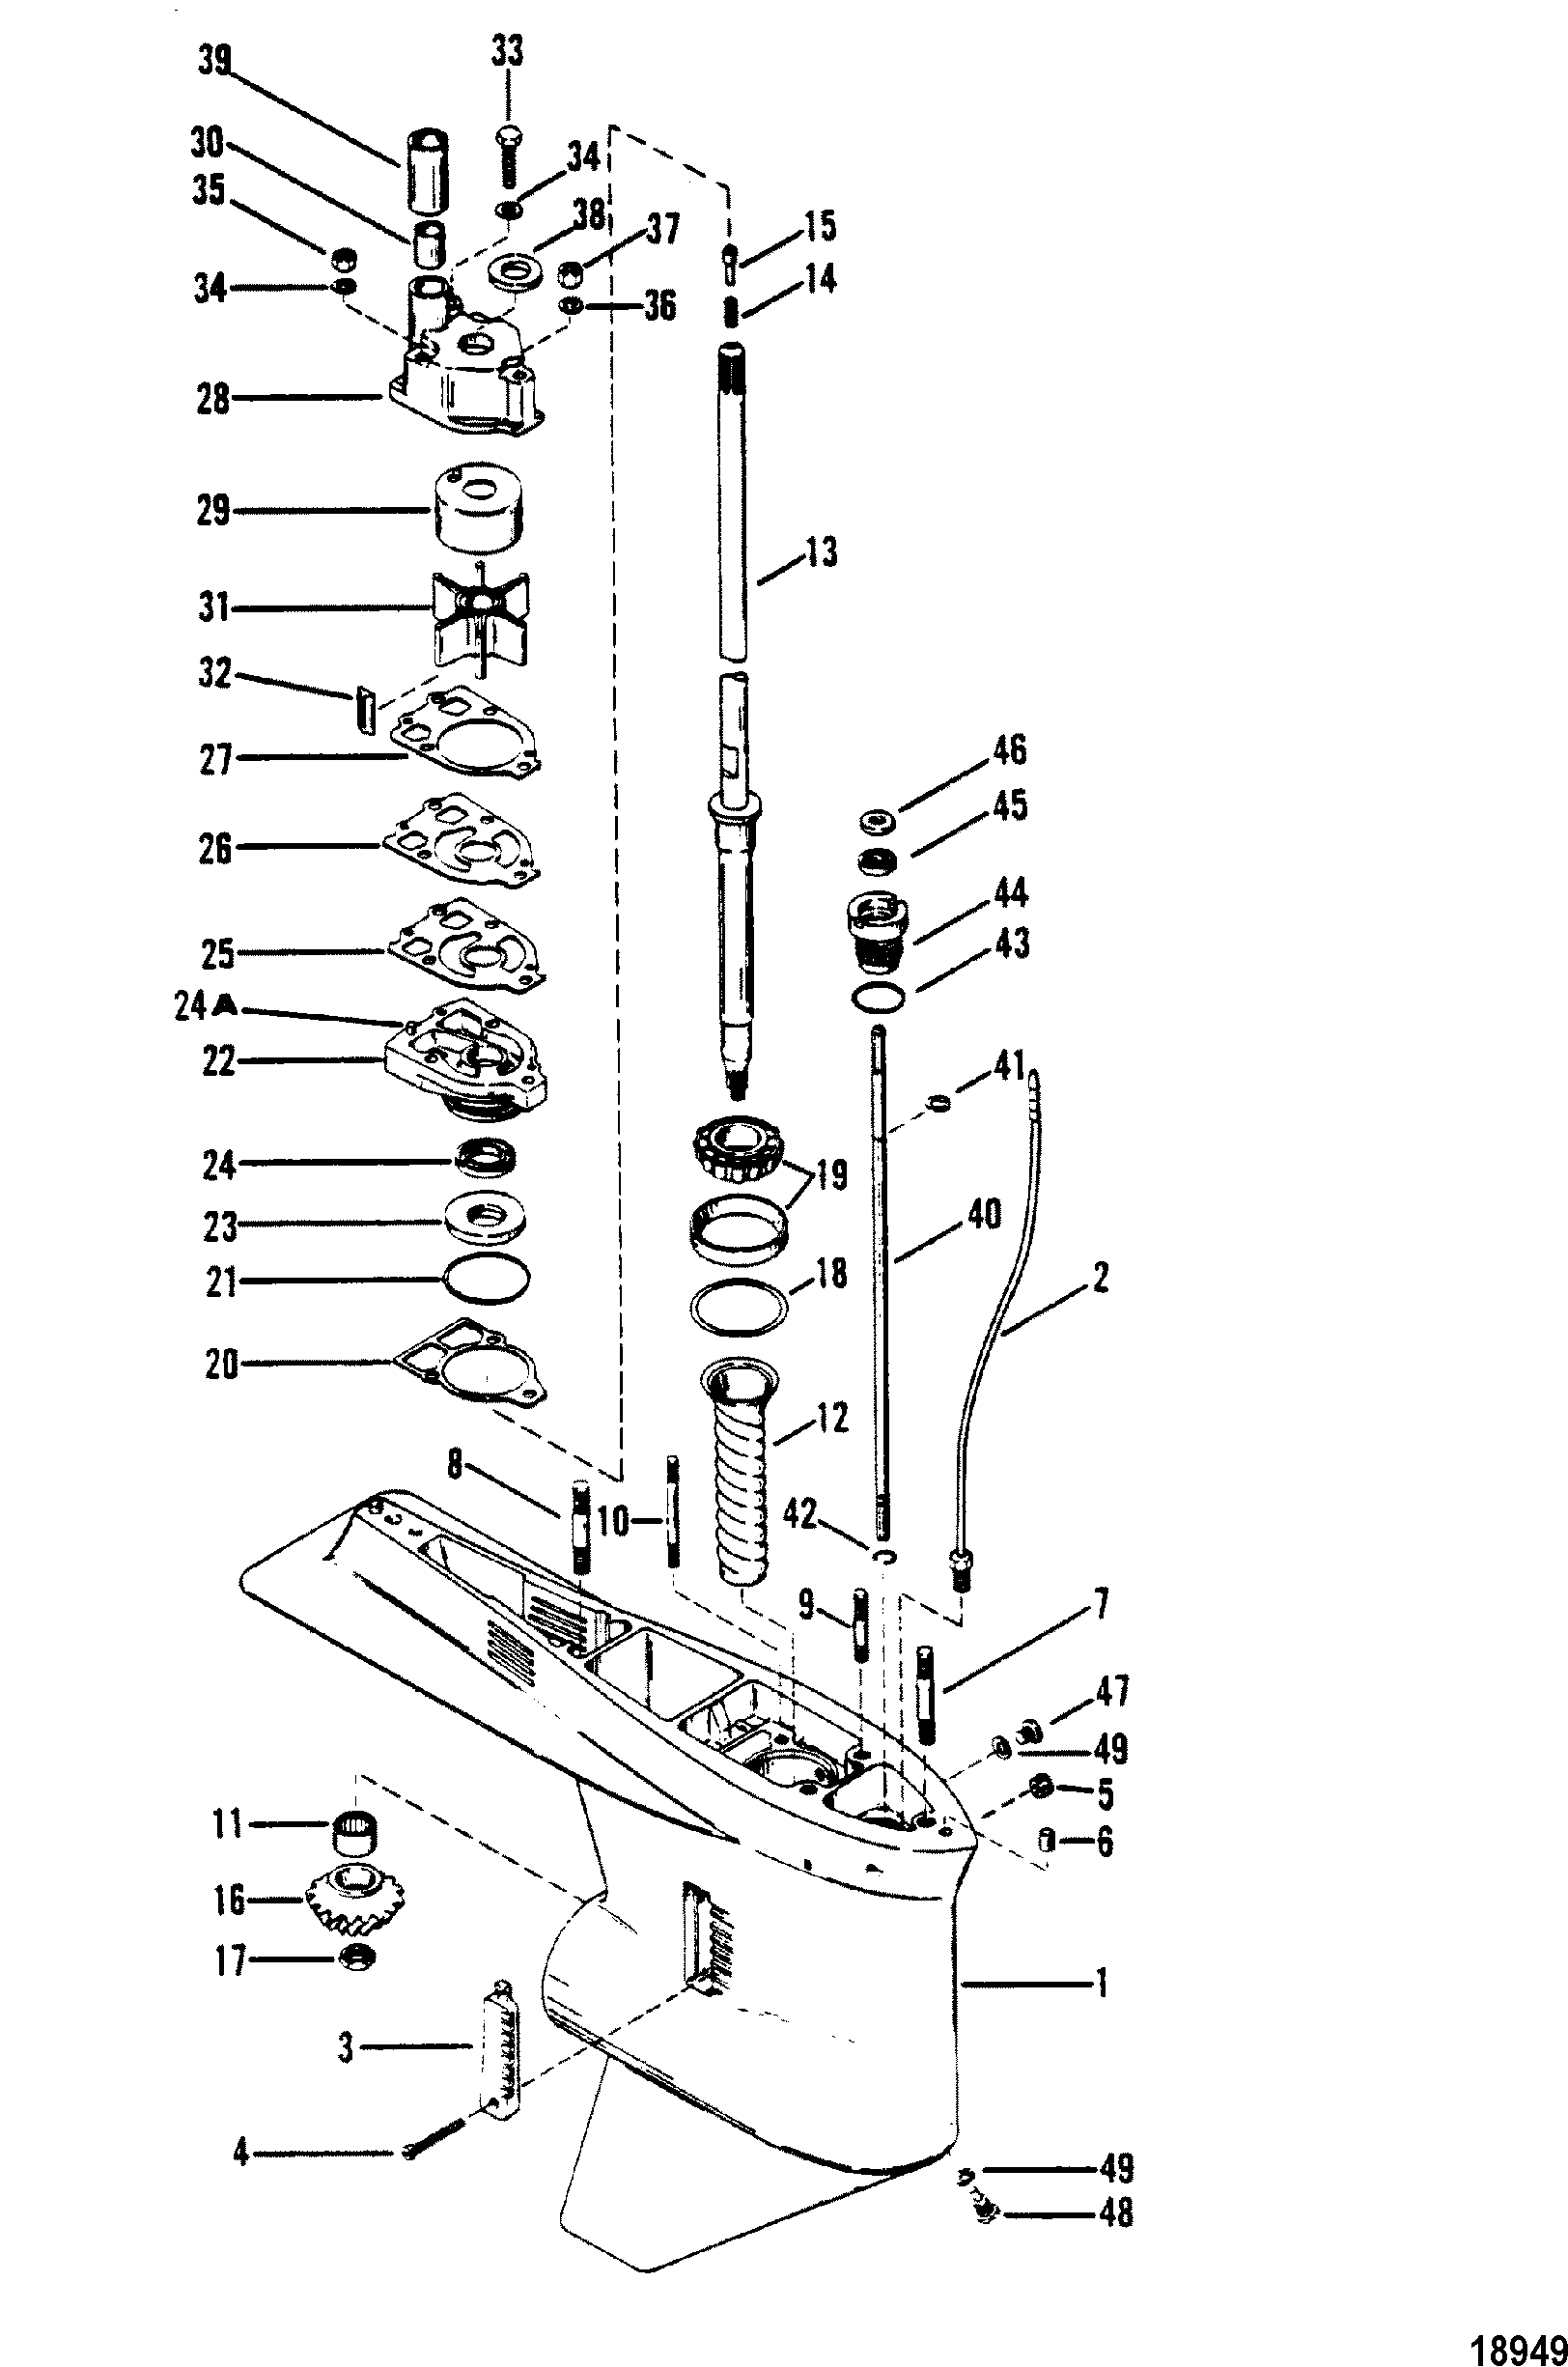 Engine Hose Diagram Engine Repair Wiring Diagram ~ ODICIS